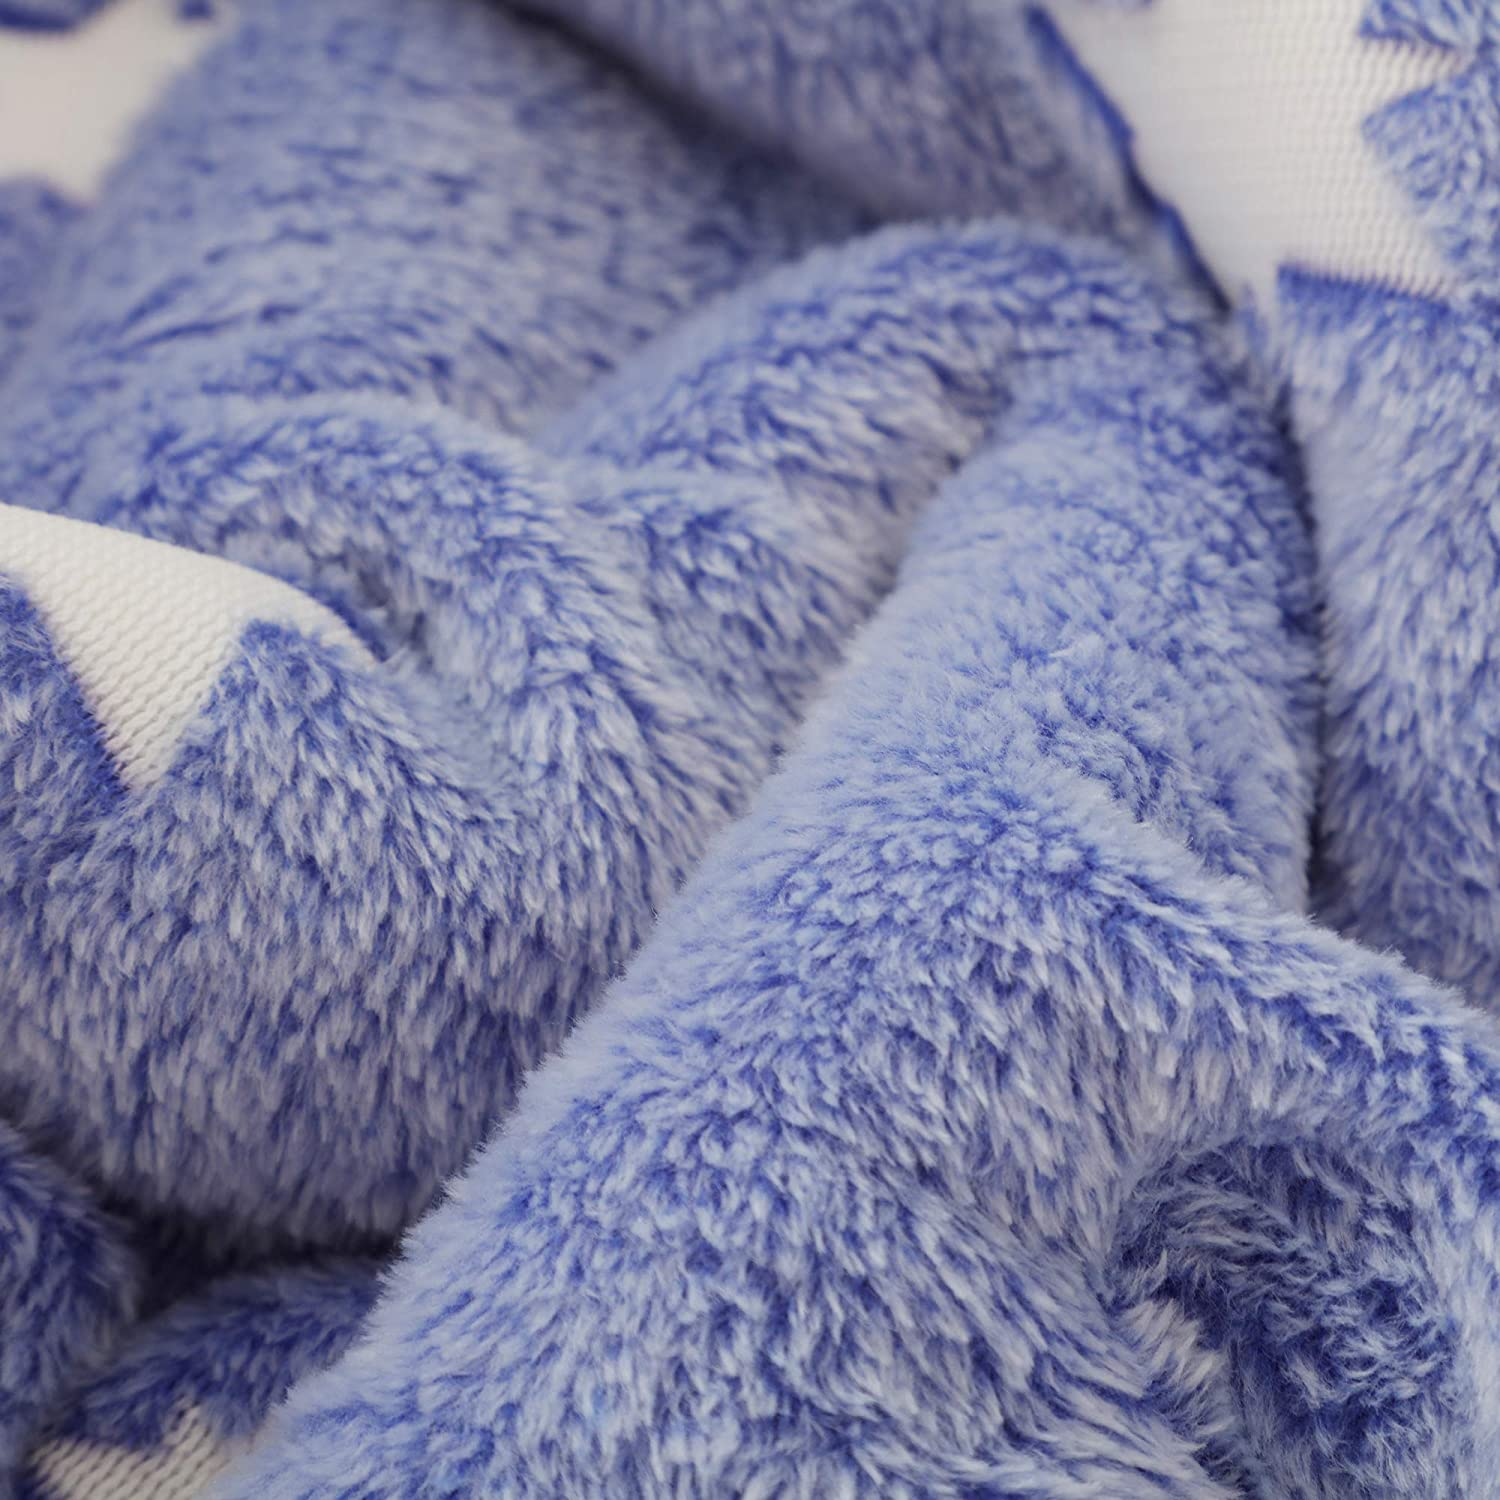 Blue 50 x 60 Inches SOCHOW Glow in The Dark Sherpa Fleece Throw Blanket Stars Pattern Double-Sided Super Soft Luxurious Plush Blanket for Kids